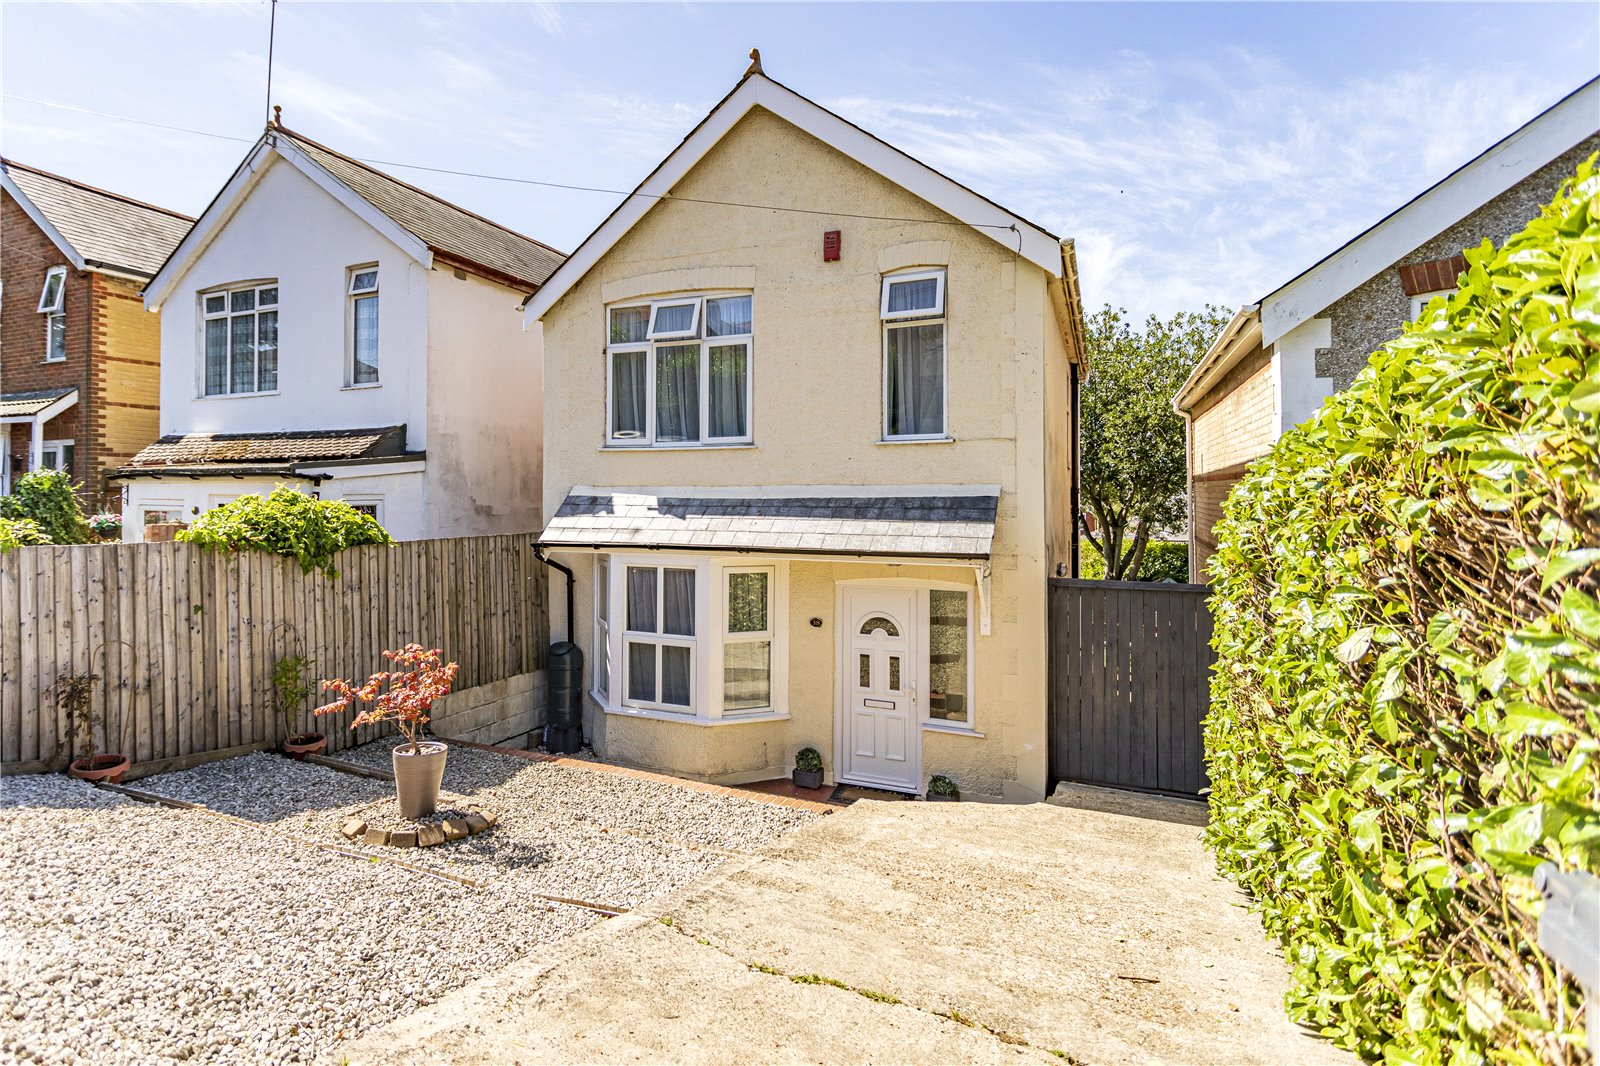 3 bed house for sale in Lincoln Road, Parkstone 0